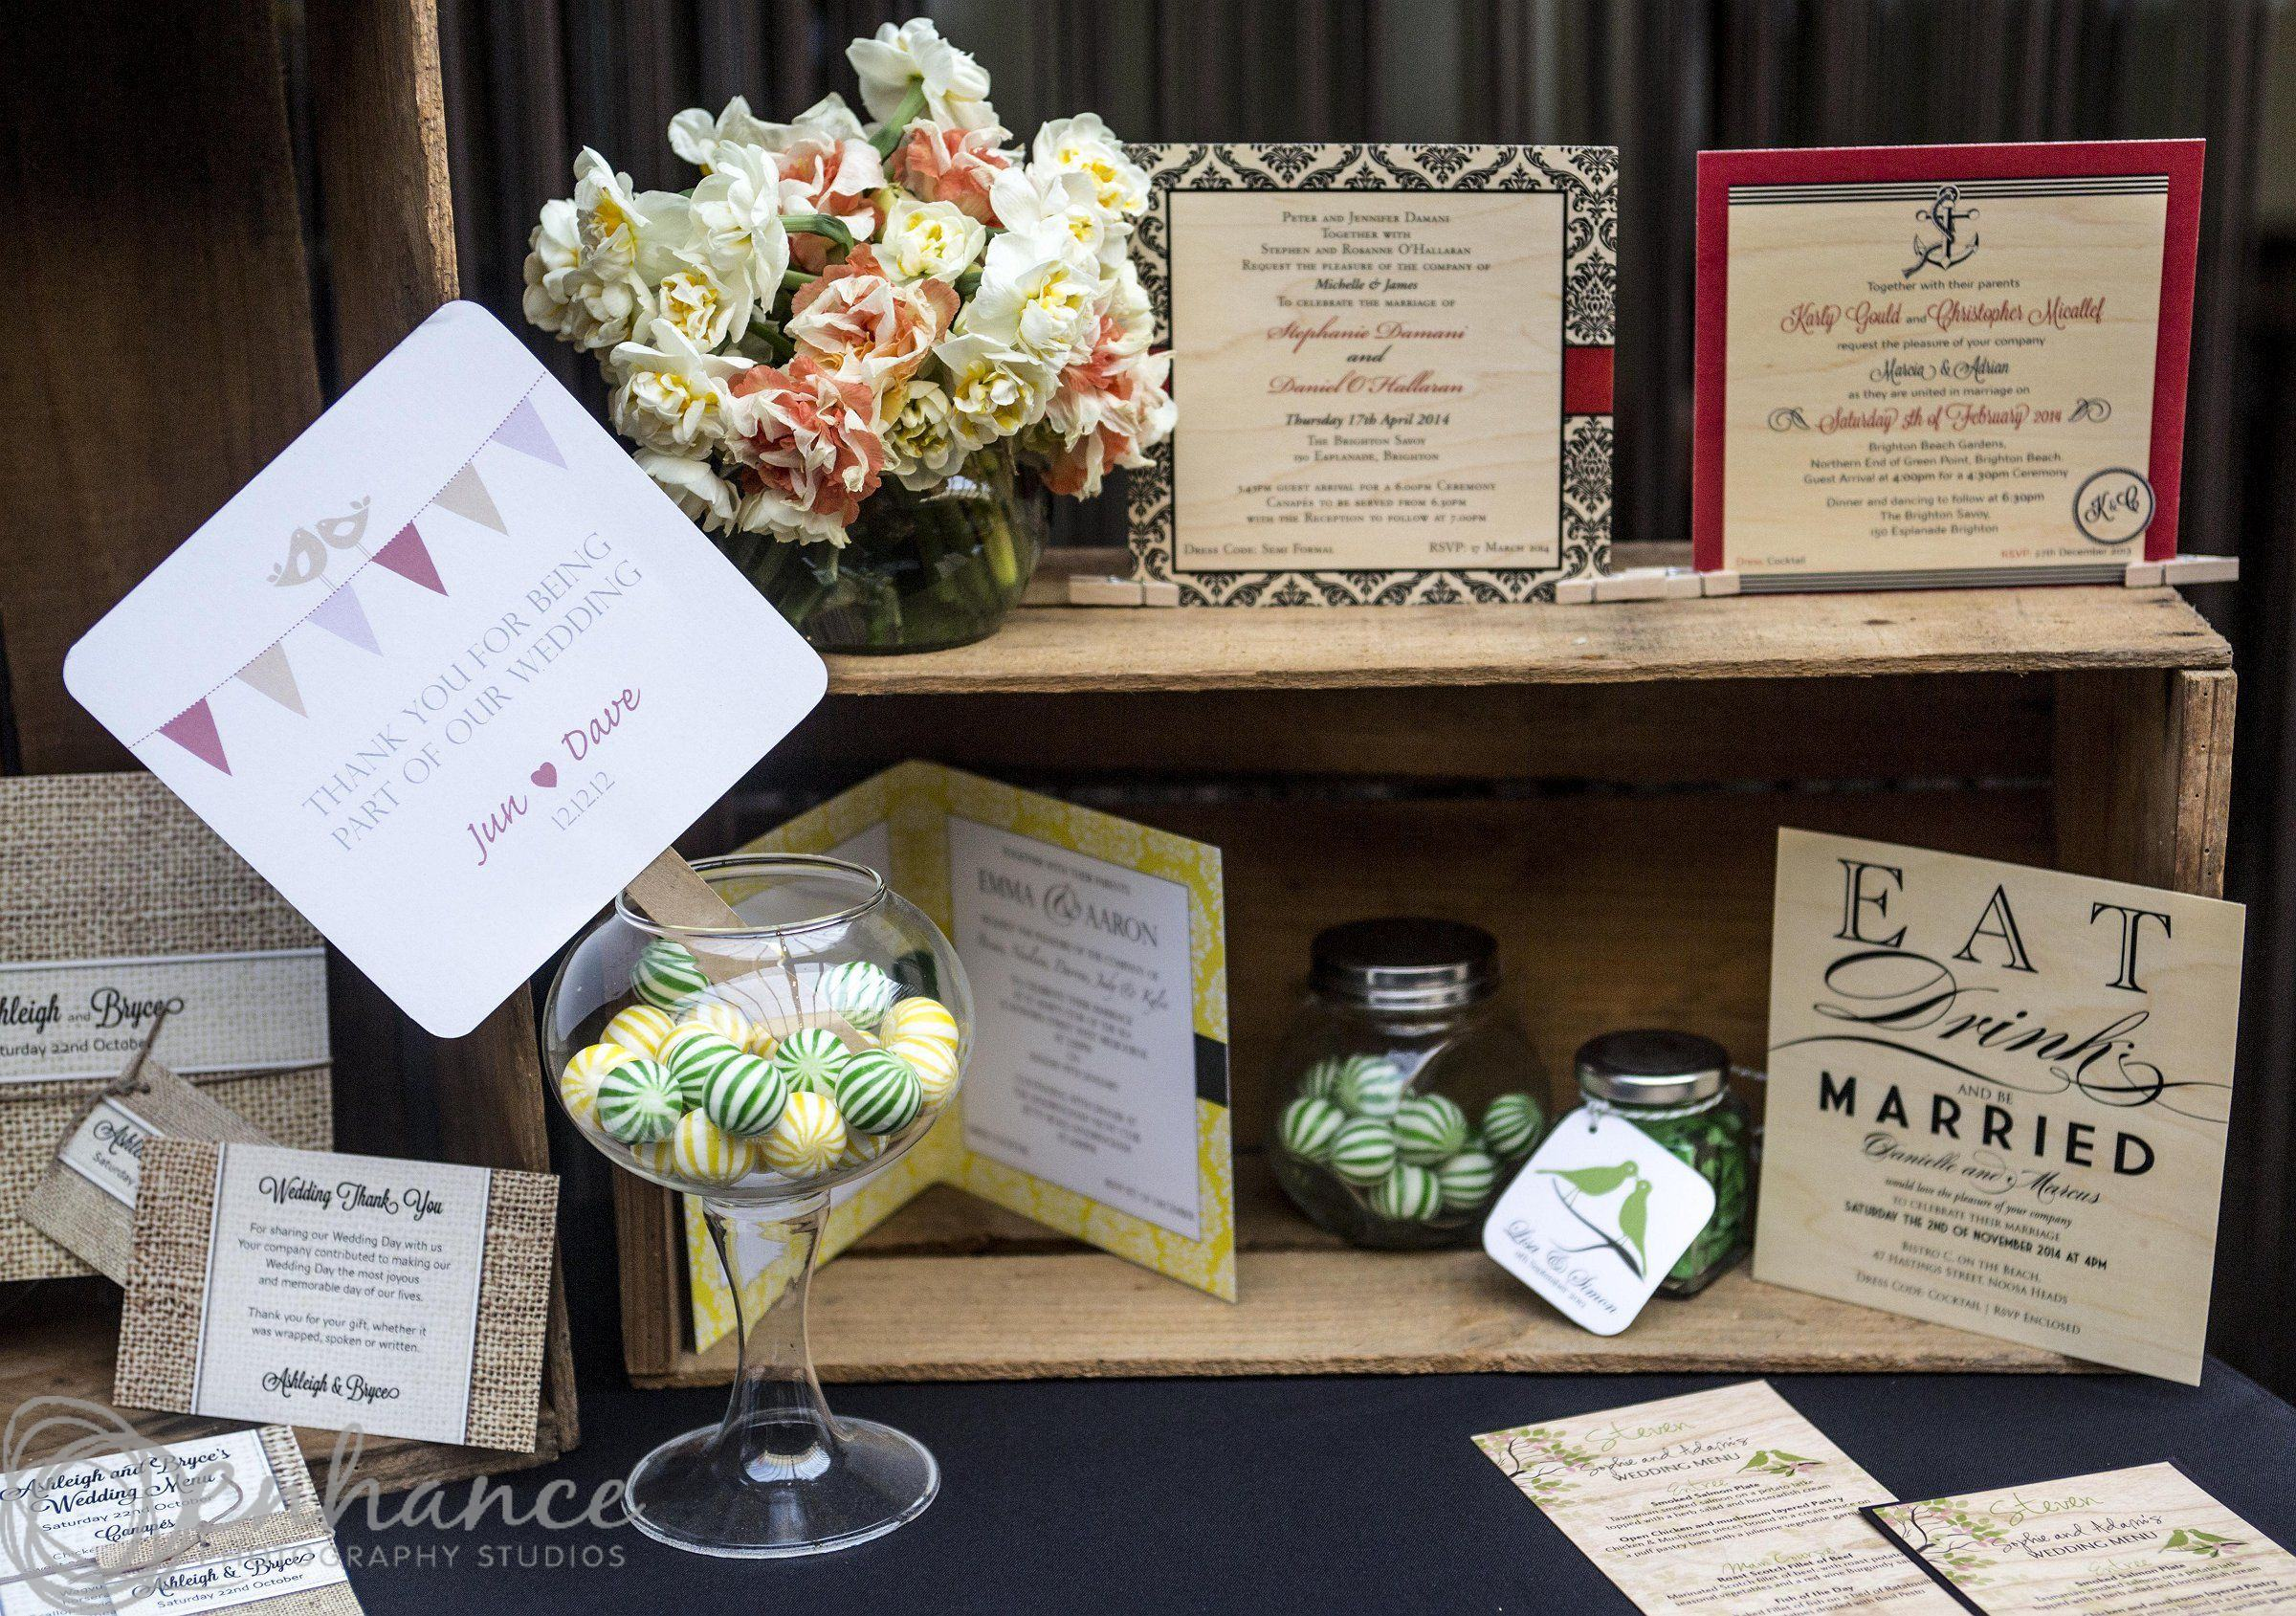 Photo of a wedding invitation display, featuring various wedding invitation styles